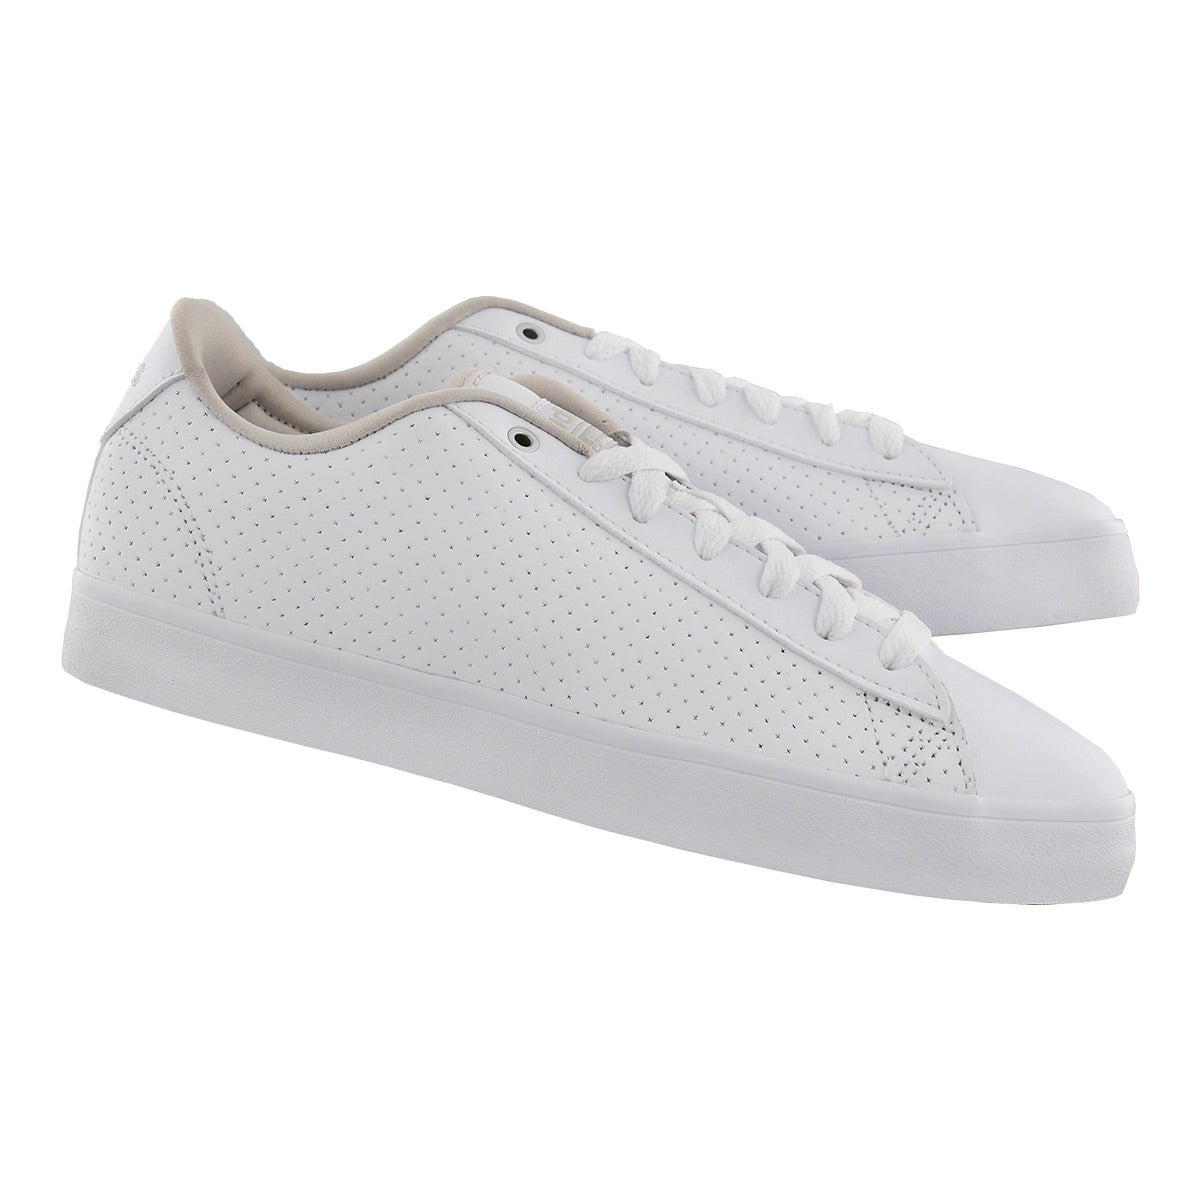 Lds CloudfoamDailyQT Clean wht sneaker